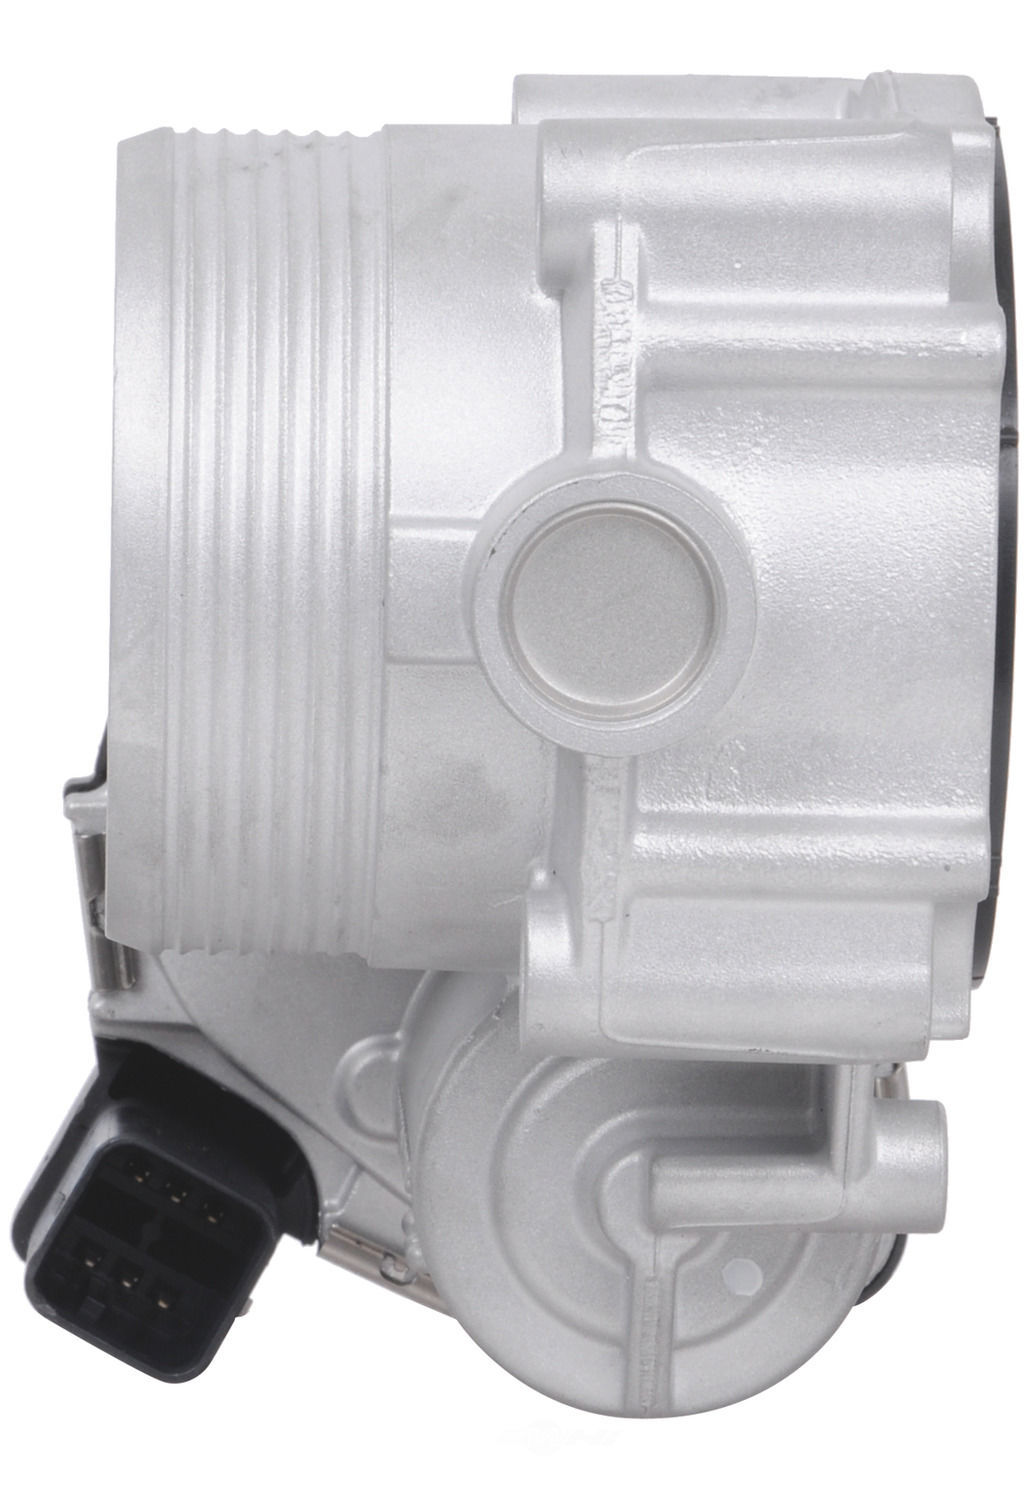 CARDONE/A-1 CARDONE - Reman. A-1 CARDONE Throttle Body - A1C 67-5005